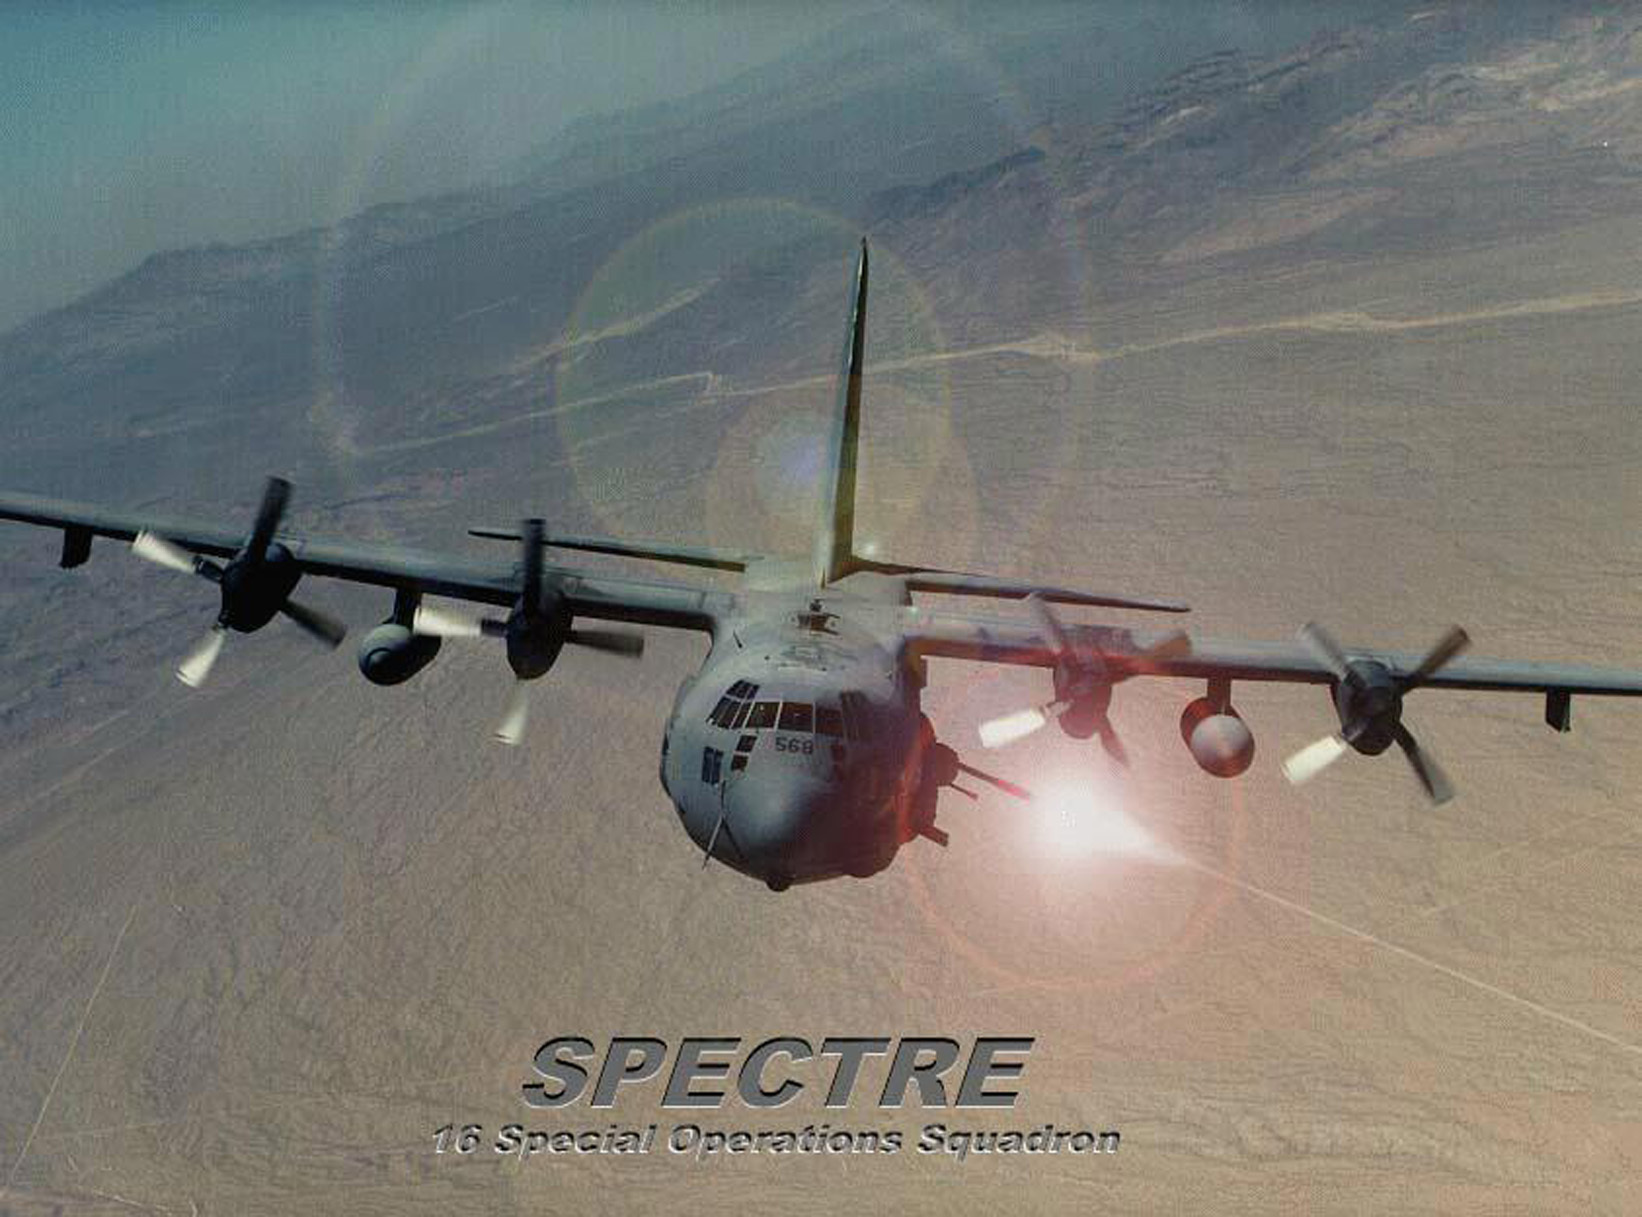 Aircraft spooky spectre HD Wallpaper